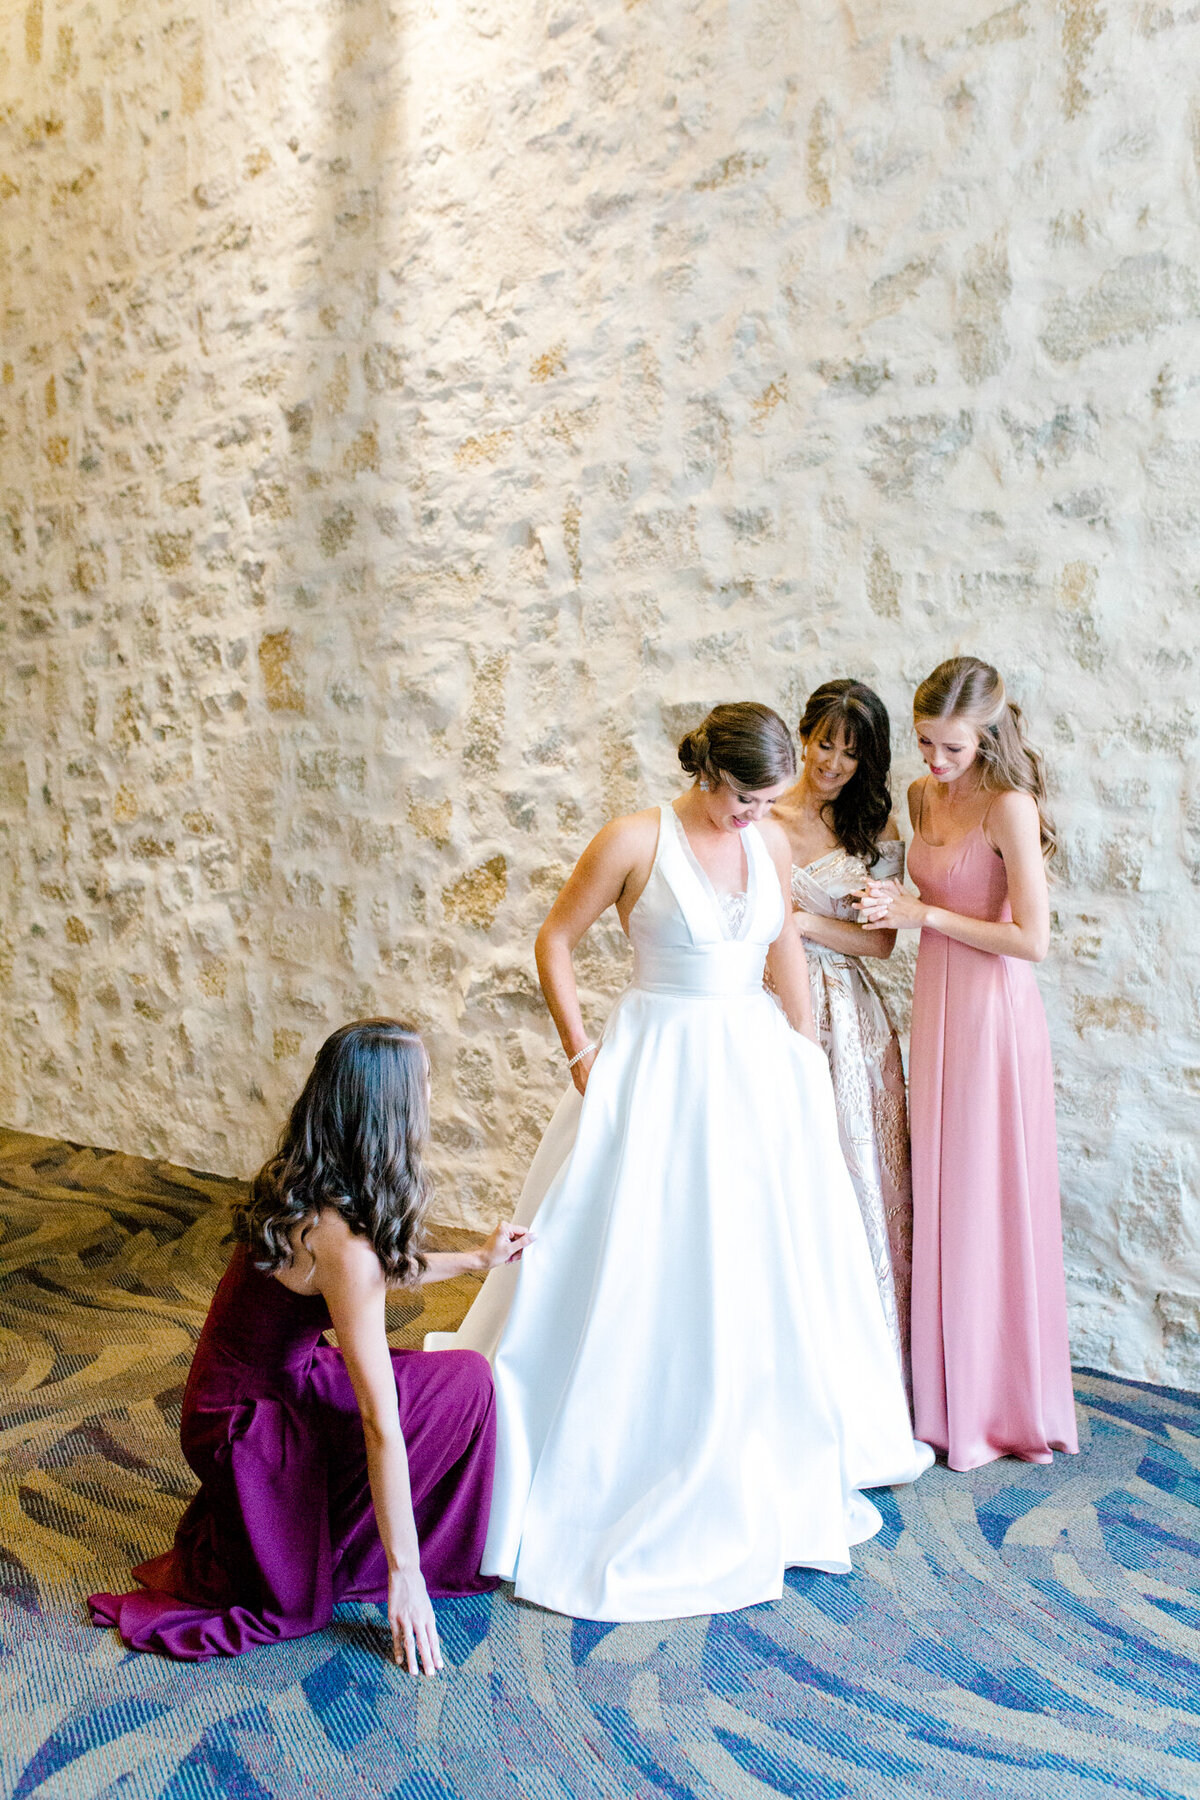 Kaylee & Michael's Wedding at Watermark Community Church | Dallas Wedding Photographer | Sami Kathryn Photography-26